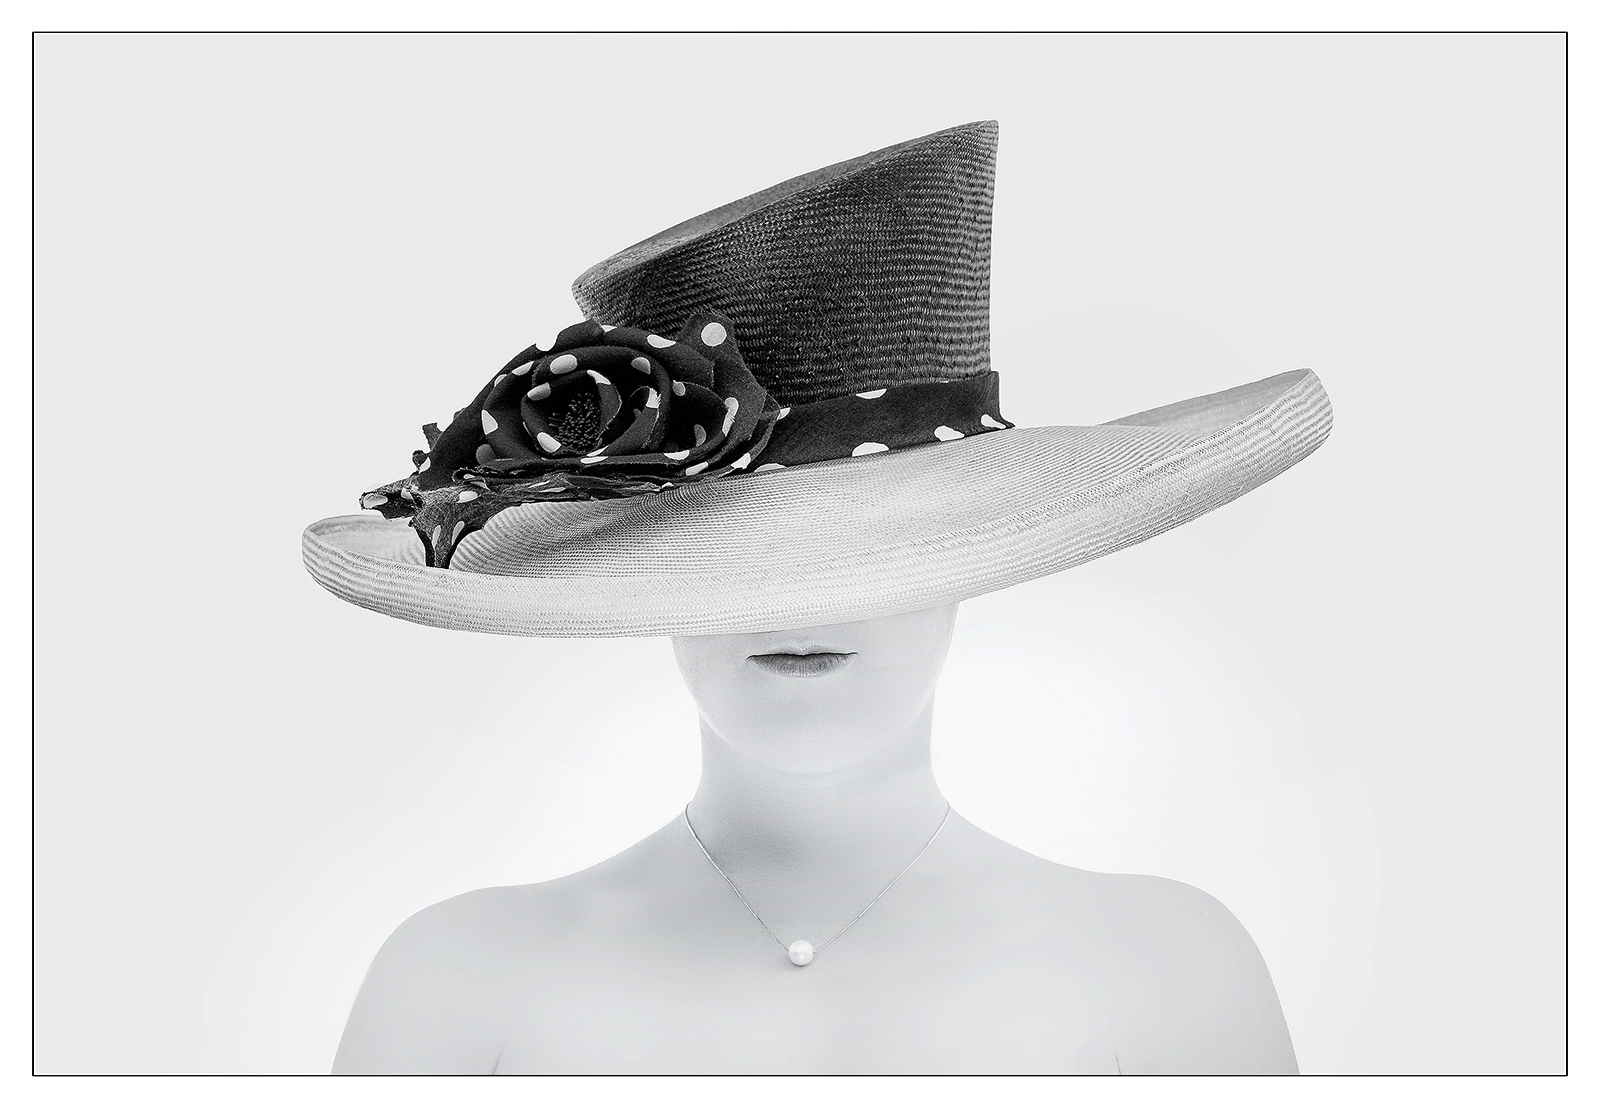 2ND THE HAT BY AUDREY PEDDIE DIV 1 MONO